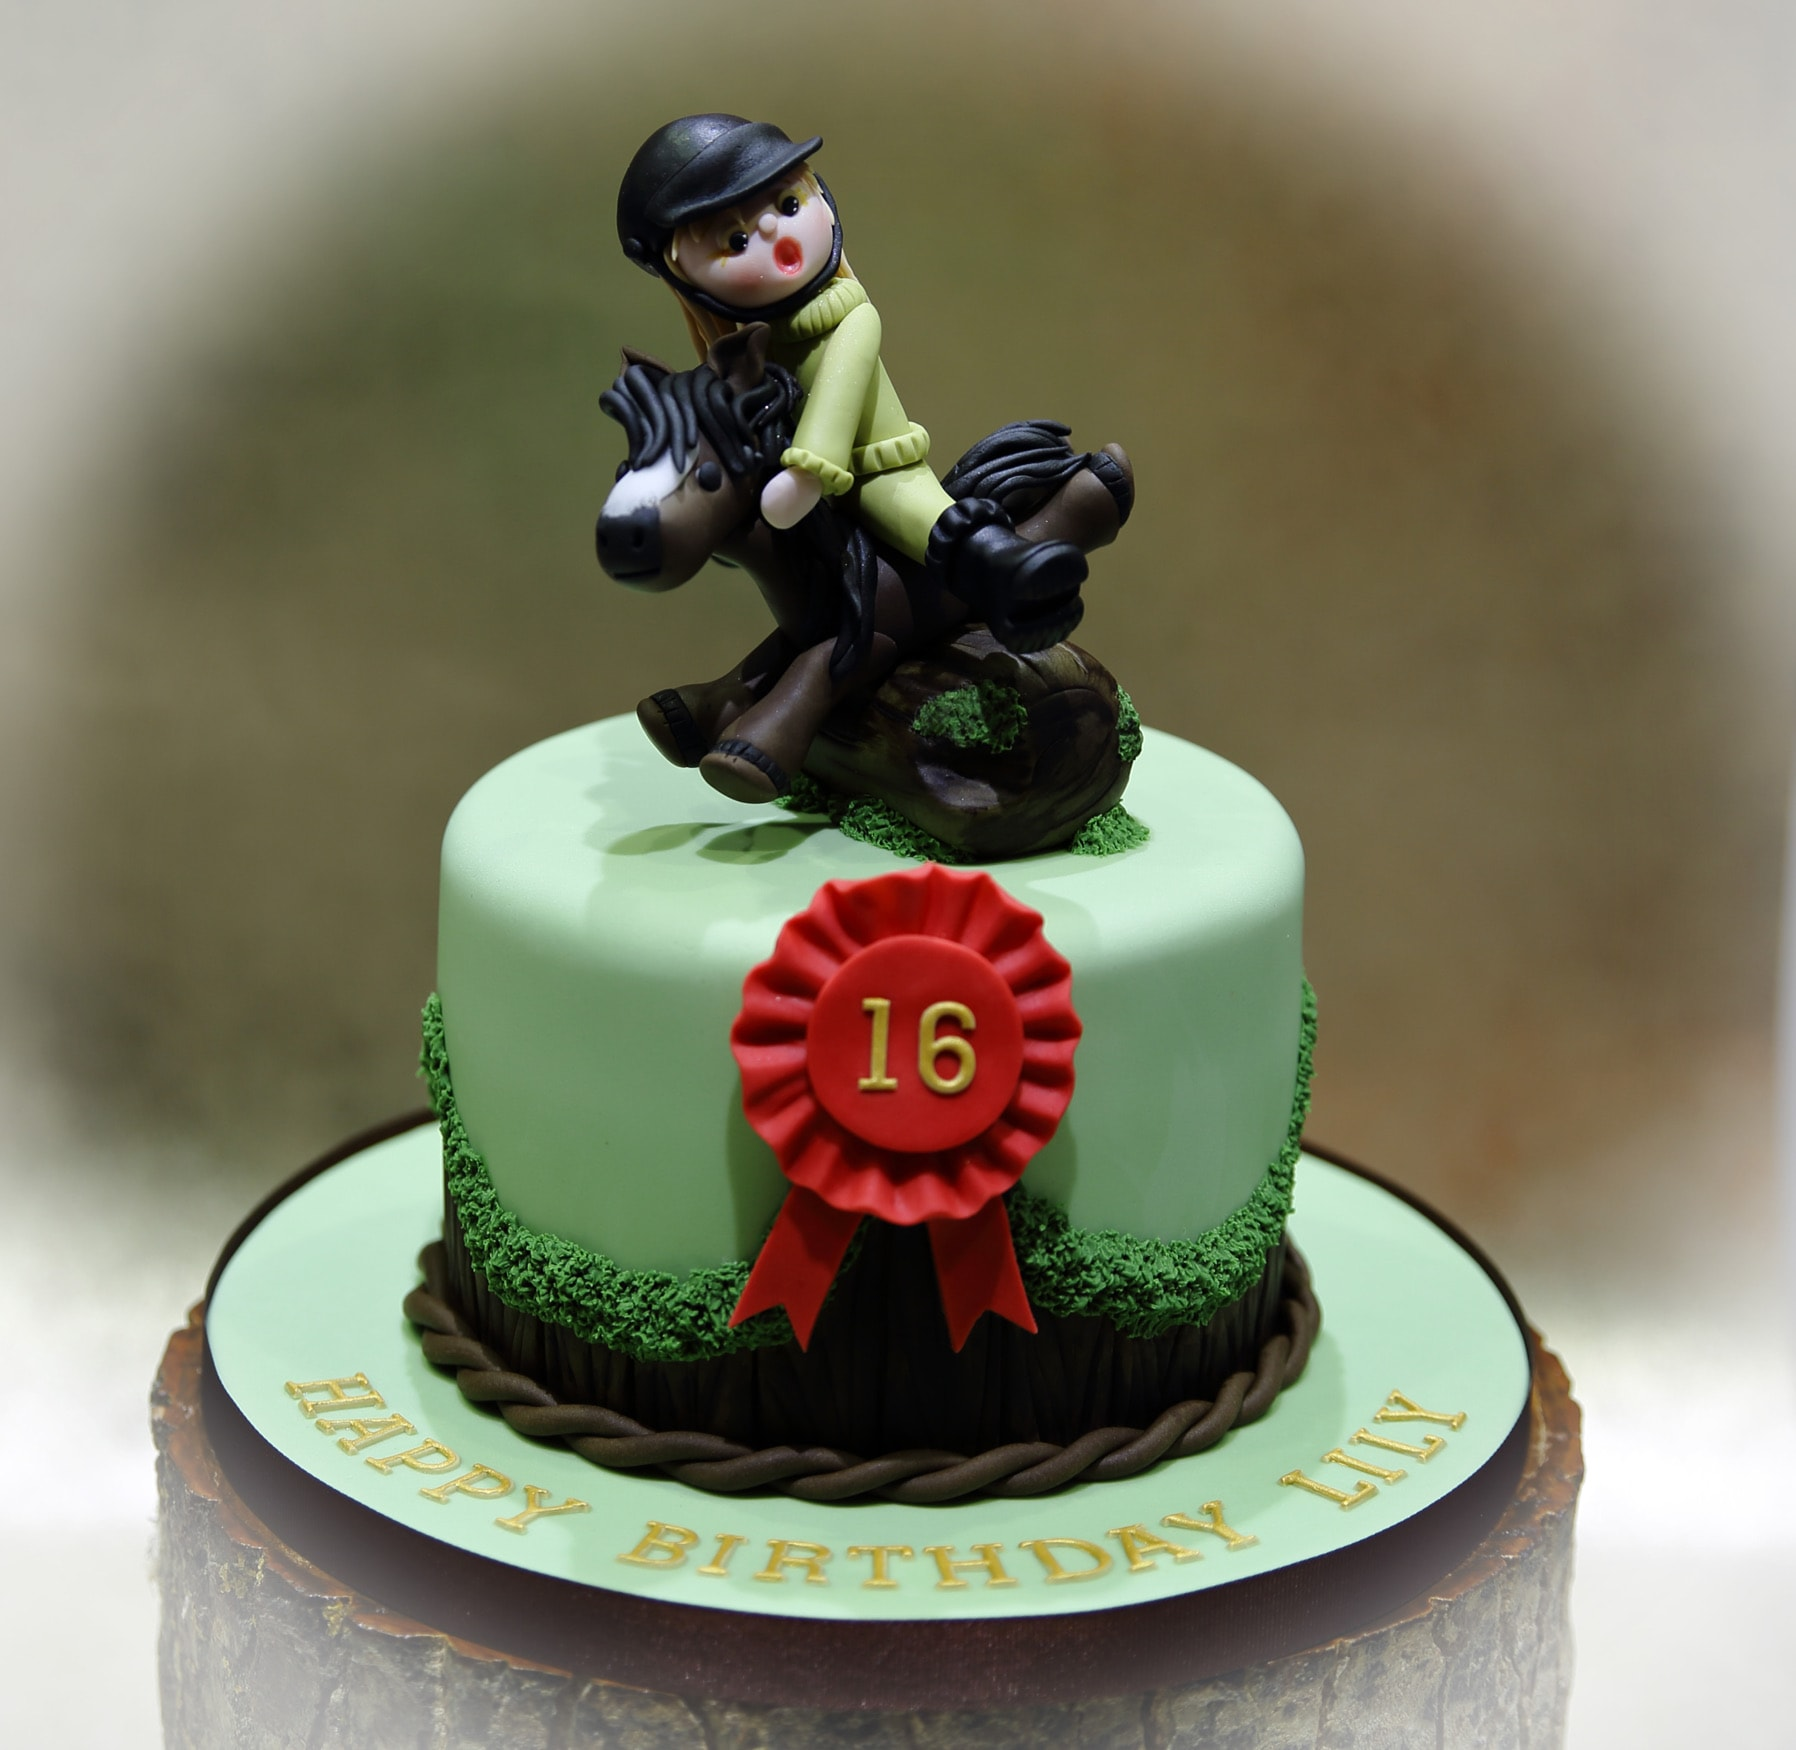 birthday cake with girl on a horse jumping over a fence